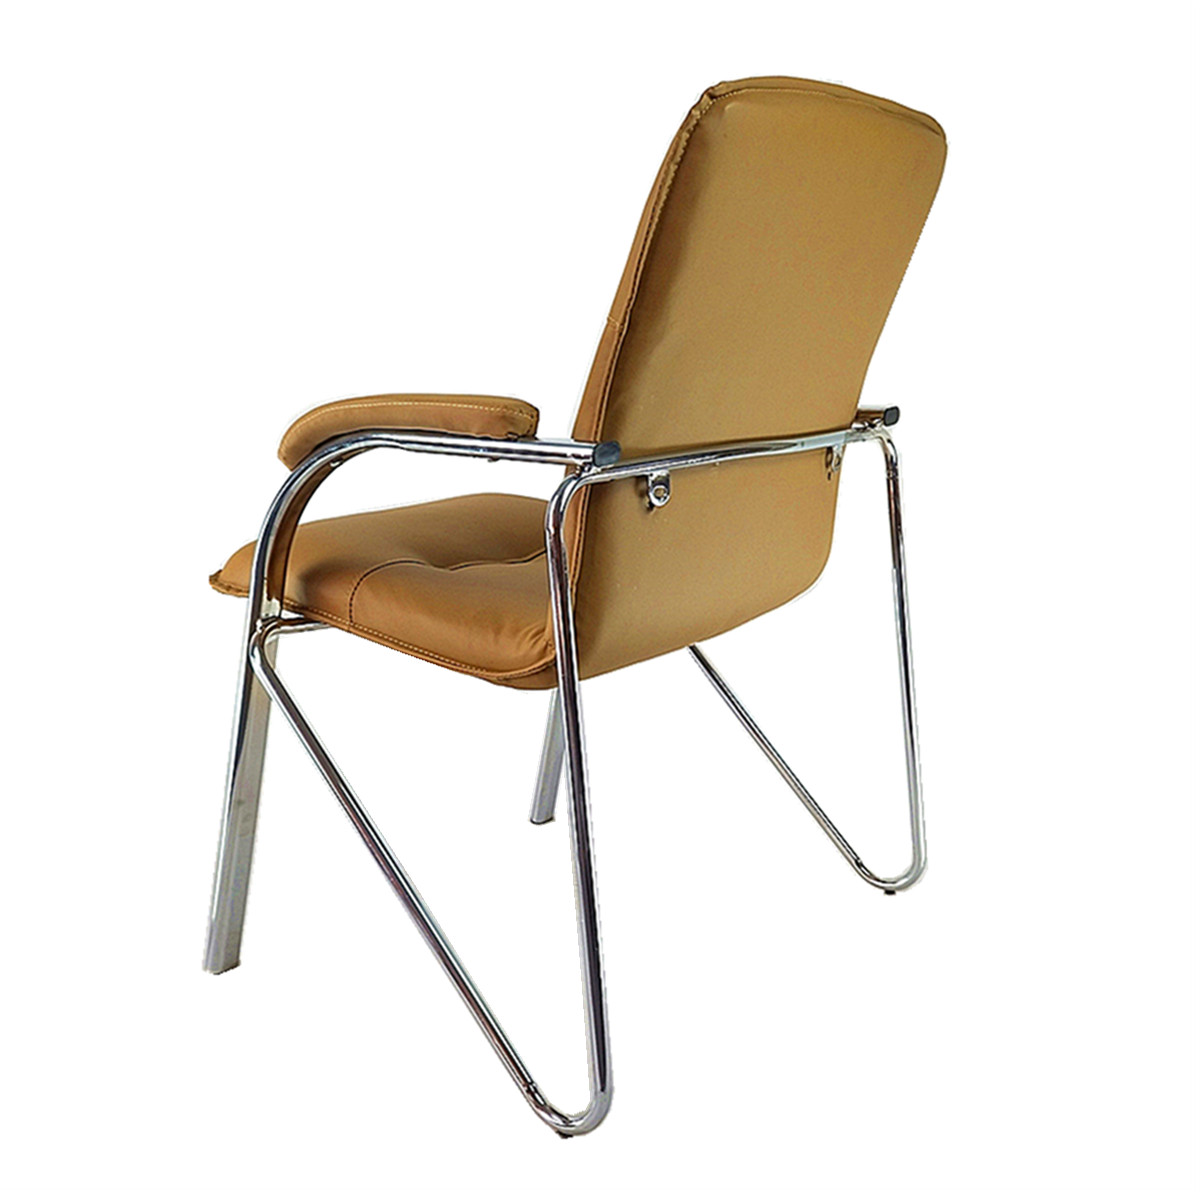 brown leather office chairs. Modern Brown Leather Office Chair Without Wheels Chairs